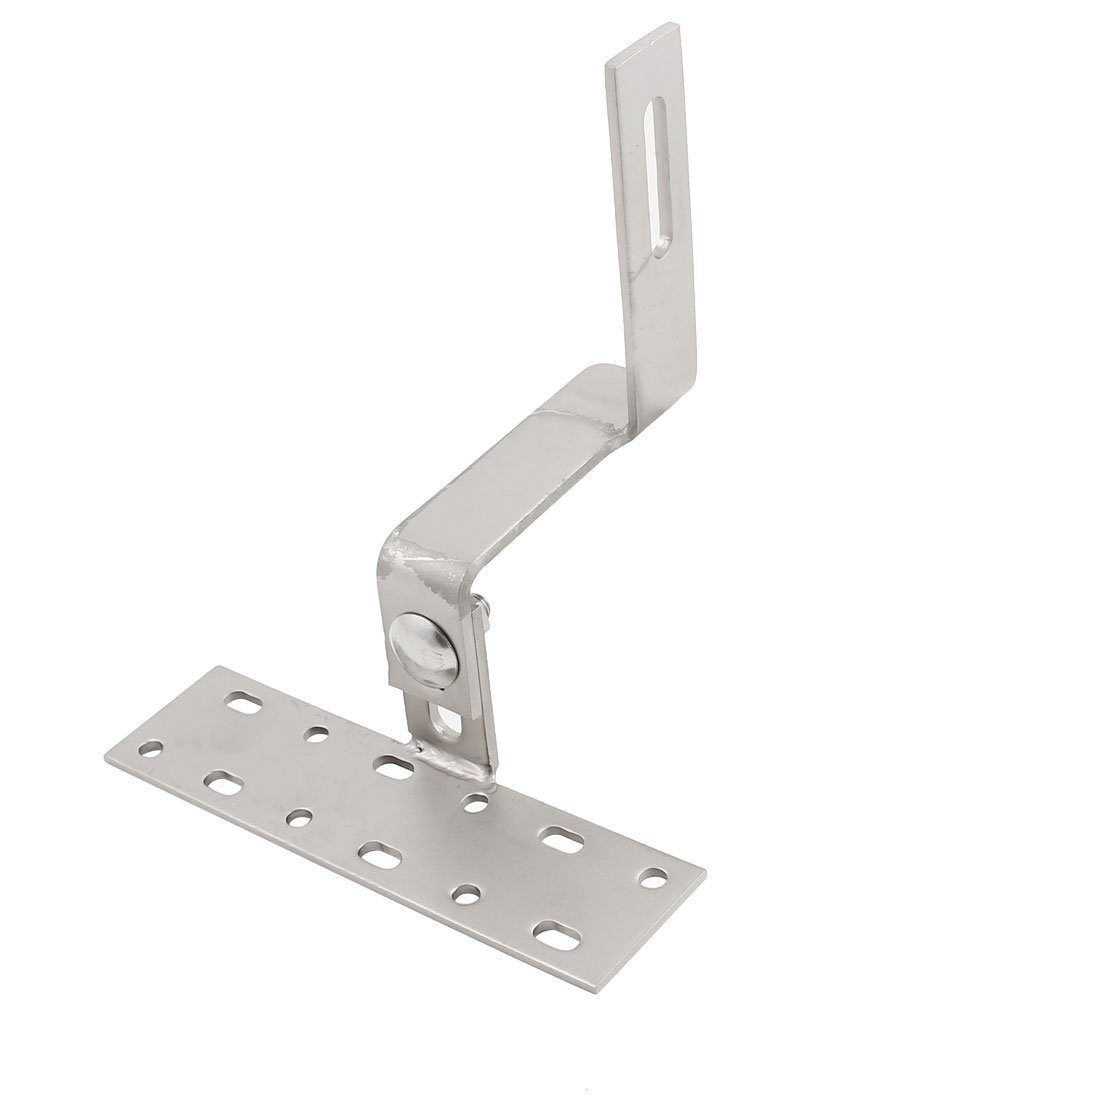 uxcell 180x150x184mm Adjustable Stainless Steel Solar Panel Mounting Brackets Slate Roof Hook